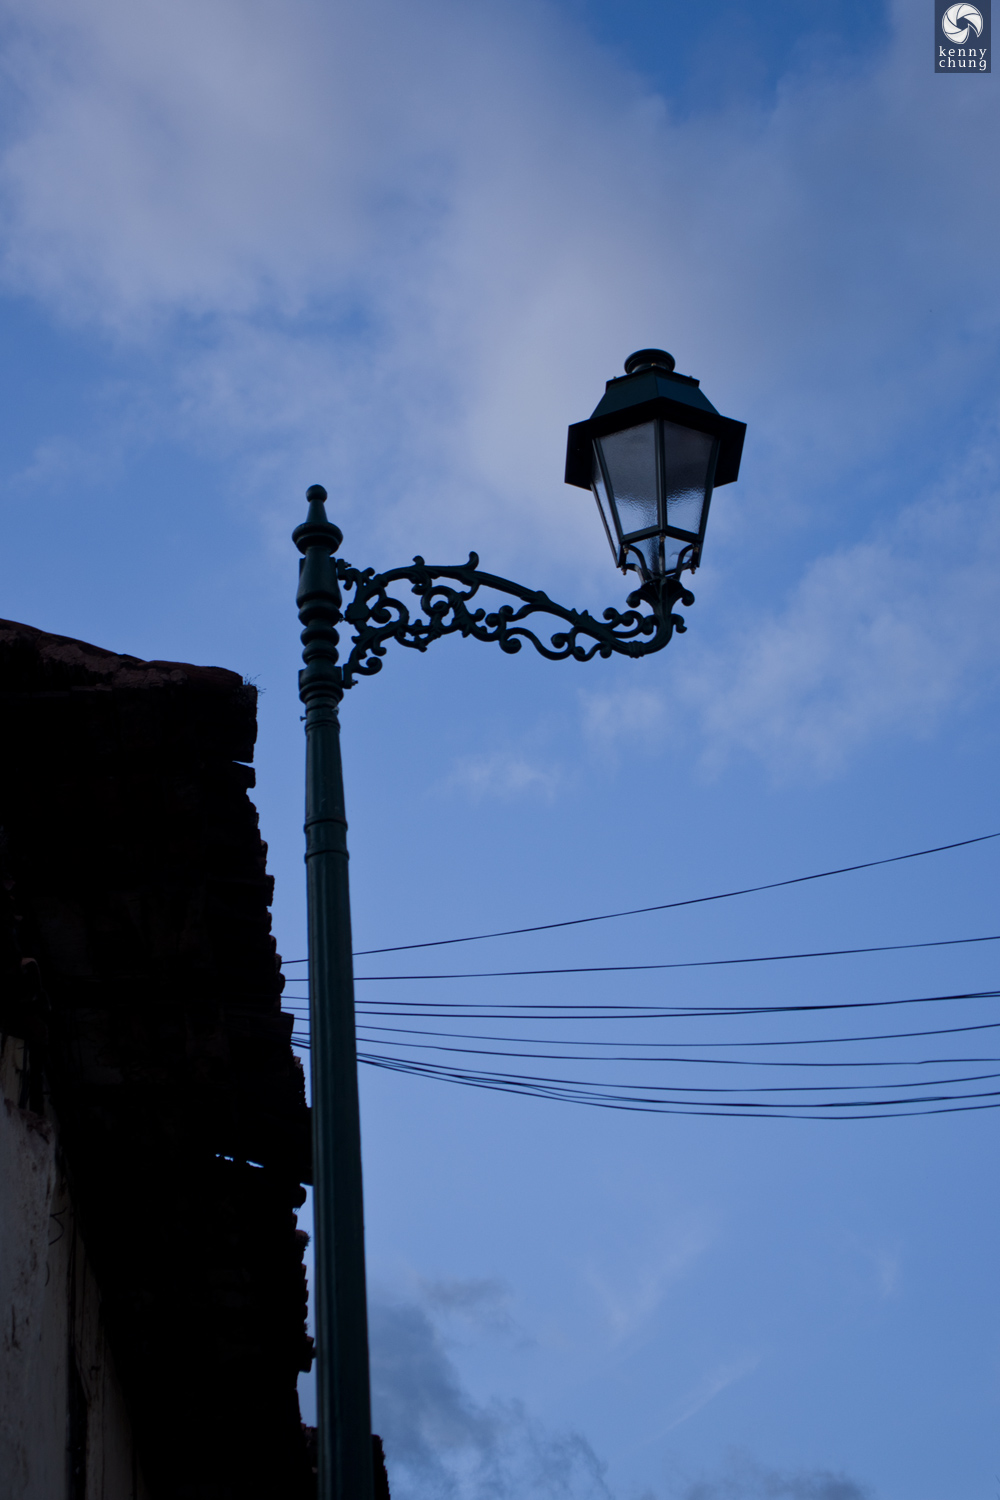 A streetlight in Cusco, Peru.